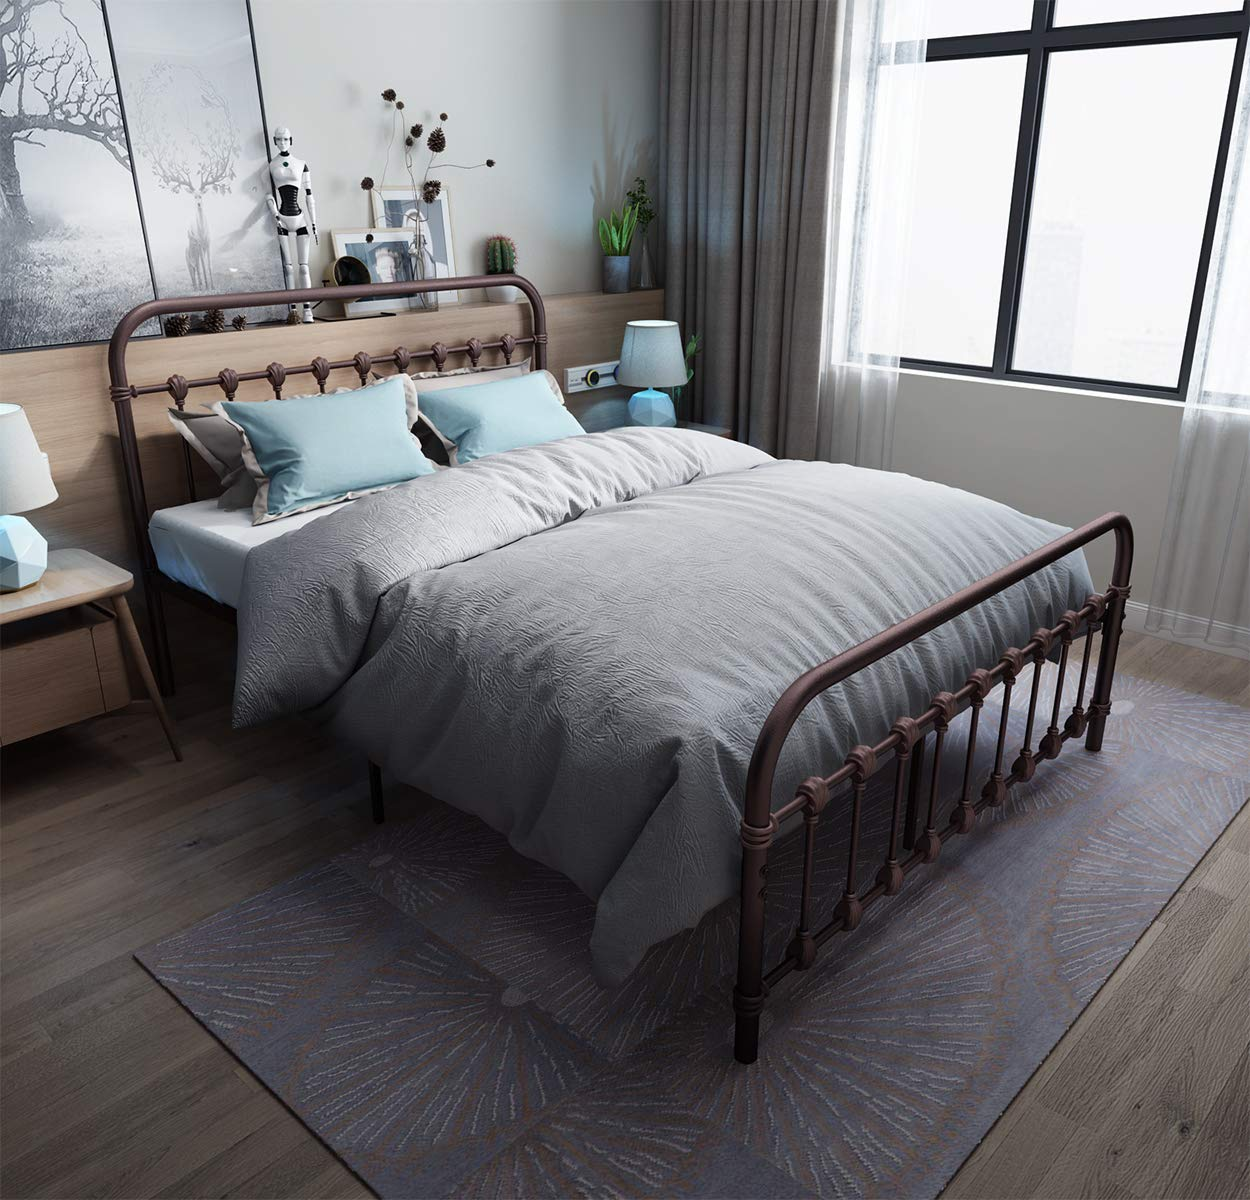 Metal Bed Frame Queen Size with shell Headboard and Footboard The country style Iron-Art Double Bed The Metal Structure, Antique Brown Baking Paint.Sturdy Metal Frame Premium Steel Slat Support.